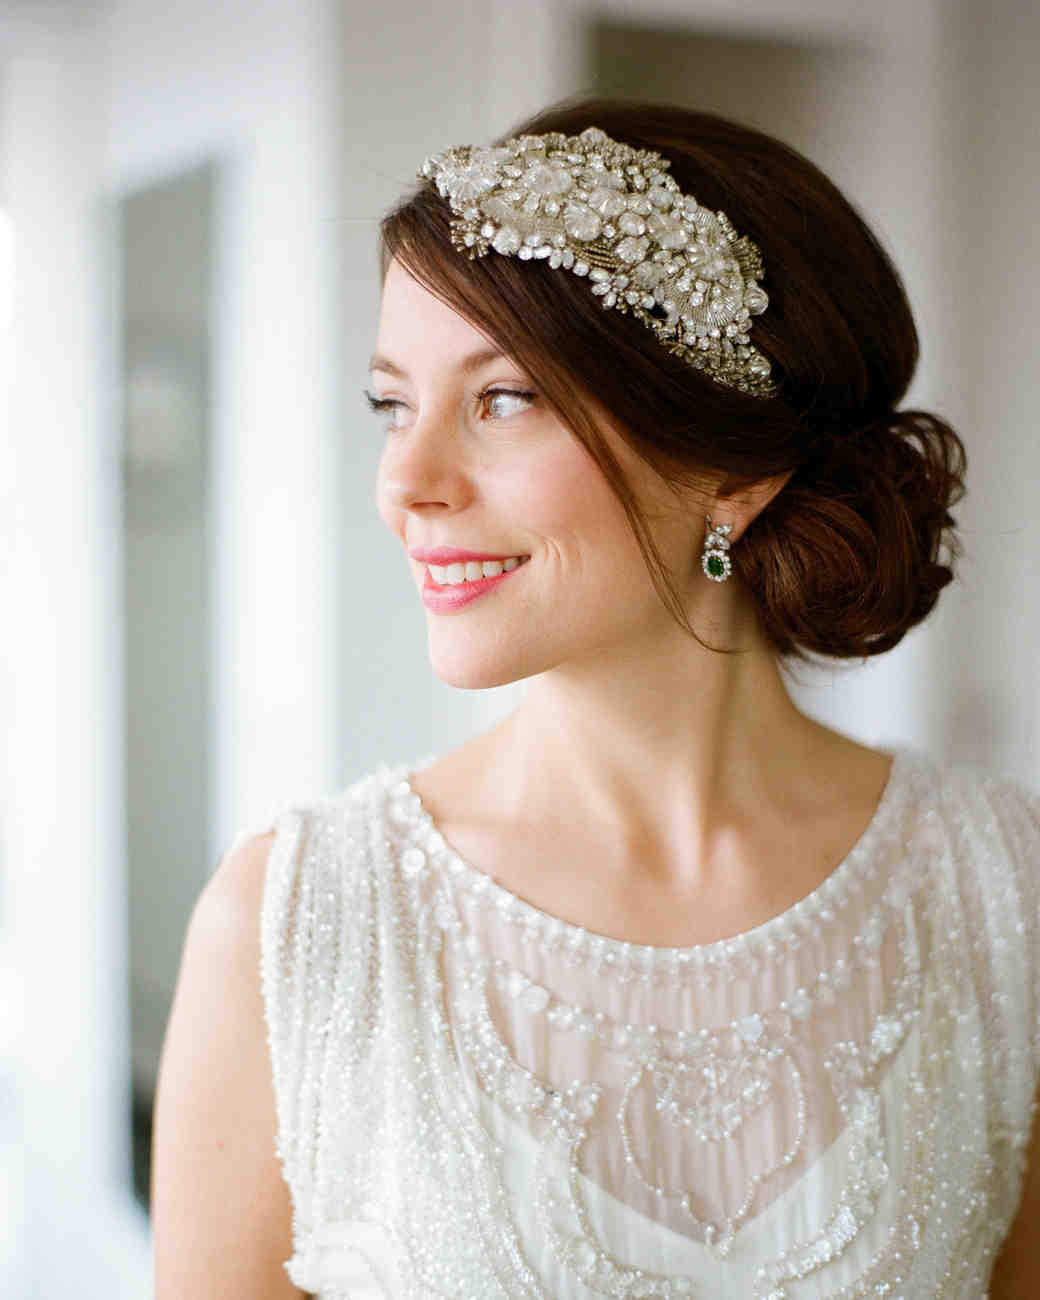 Wedding Bridal Hairstyles  29 Cool Wedding Hairstyles for the Modern Bride